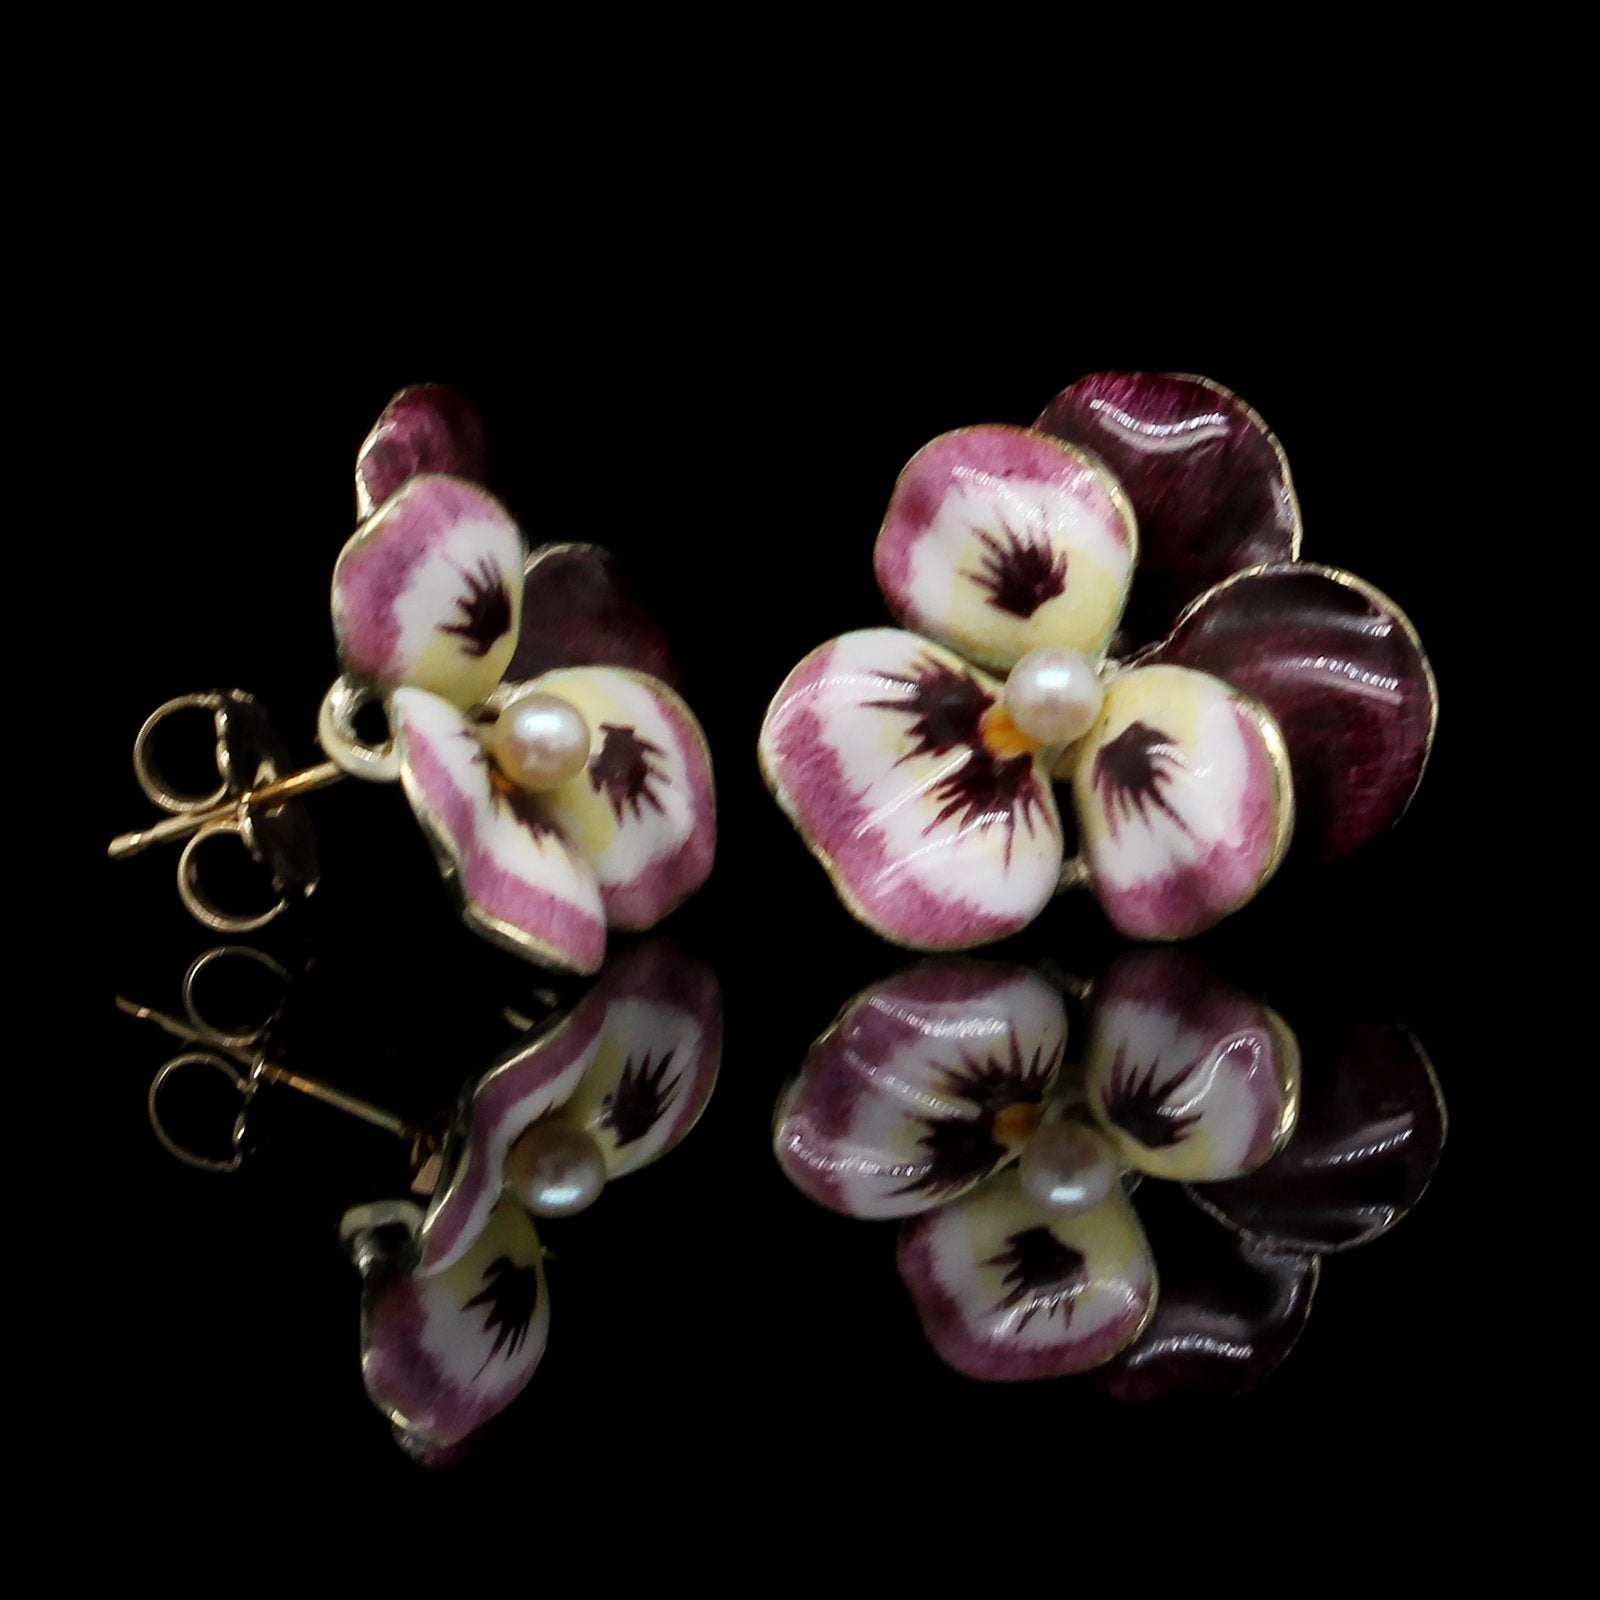 Vintage 14K Yellow Gold Enamel Pansy Flower Earrings